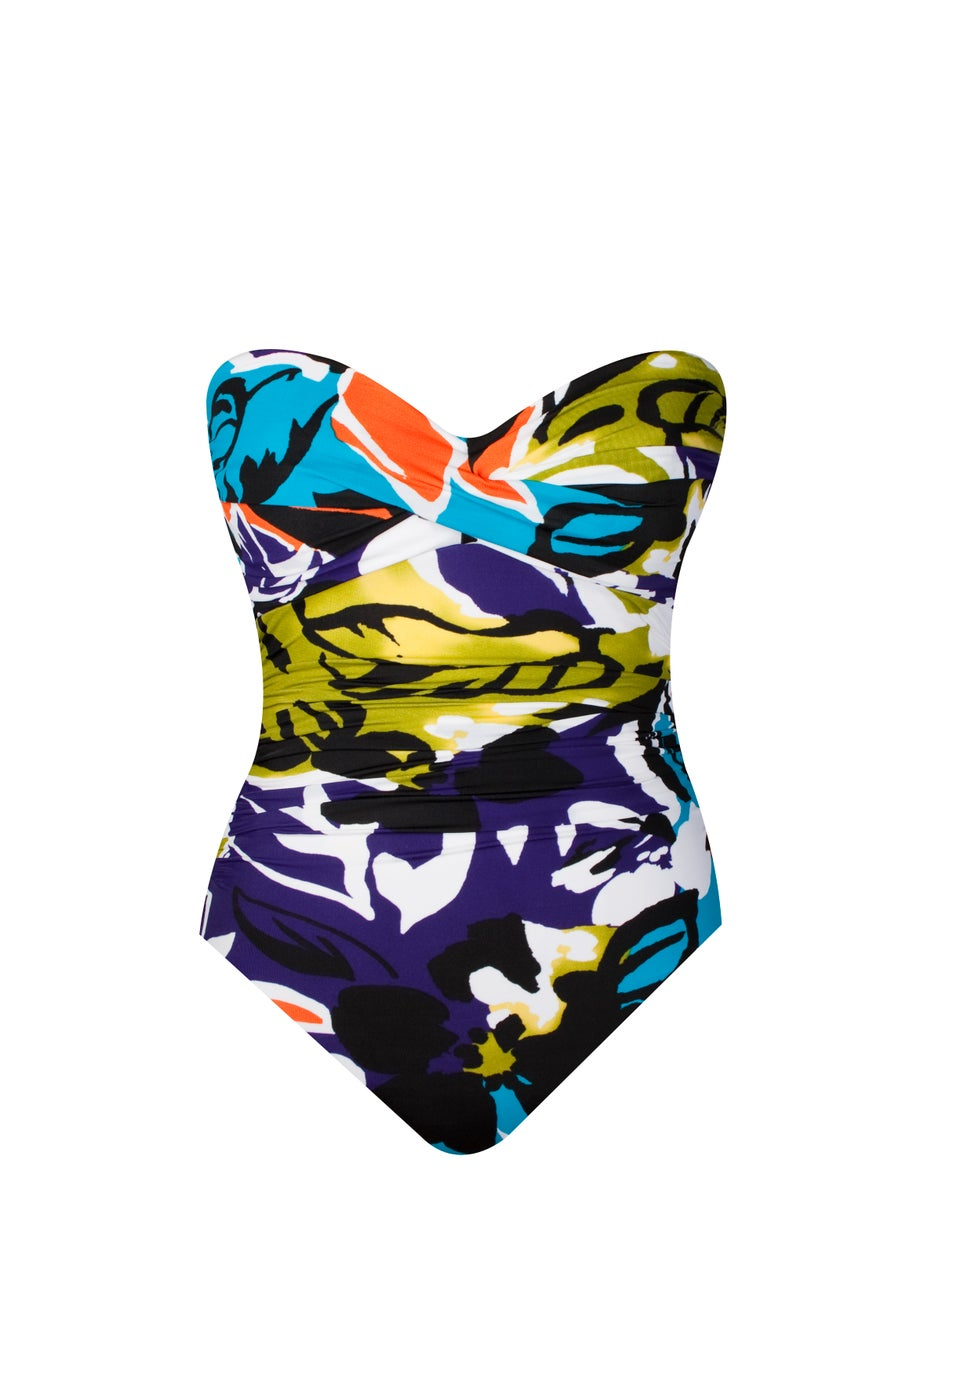 Summer Swimsuit Guide